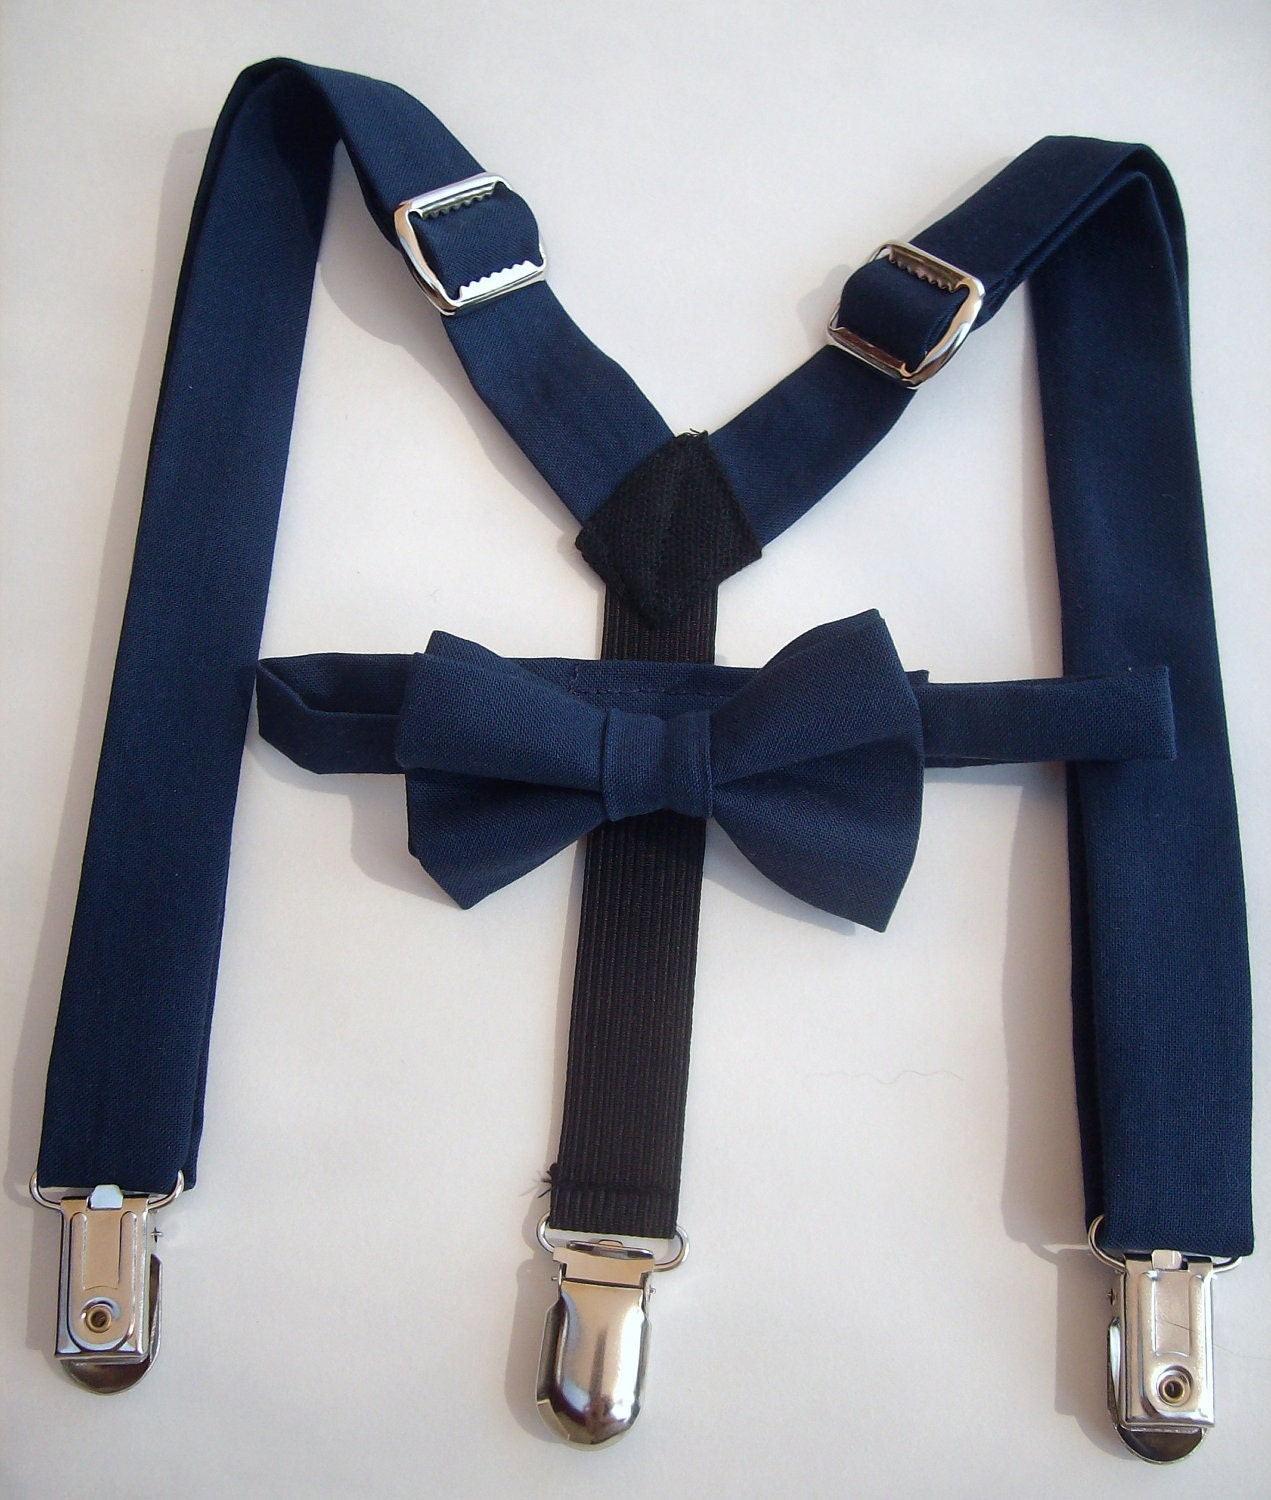 Skip to Navigation Skip to UConn Search Suspenders Braces Tied Sets Tie Pre Black AND Combo Bow Adjustable wFHqwEA. Management Plan or Handkerchief and Blue Tie Square tied Set Bow Silky Satin Baby Boys Pre Mens Matching Pocket Handkerchief Pocket Satin and Matching Mens Tie Set Bow Baby Silky Square Including or Cufflinks Pre tied Blue.